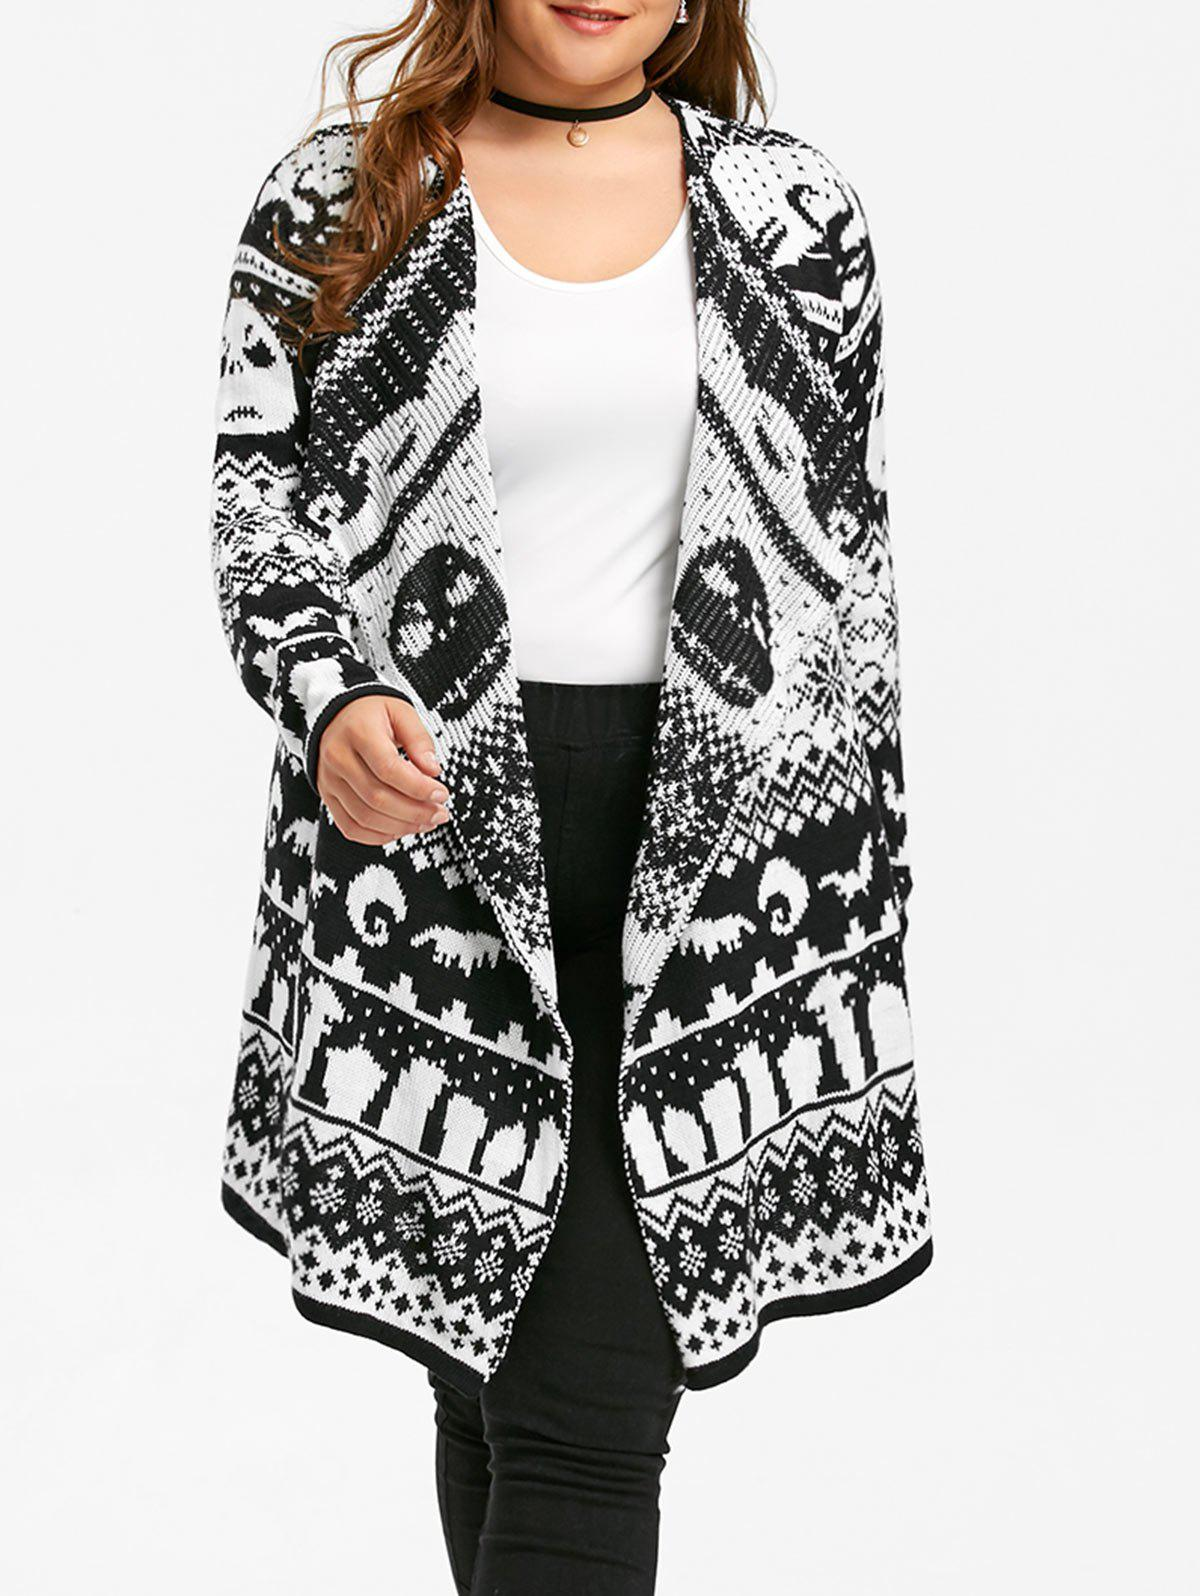 Halloween Plus Size Skull Sweater Drape CardiganWOMEN<br><br>Size: 5XL; Color: BLACK WHITE; Type: Cardigans; Material: Polyester,Spandex; Sleeve Length: Full; Collar: Collarless; Style: Fashion; Season: Fall,Winter; Pattern Type: Others; Weight: 0.4700kg; Package Contents: 1 x Cardigan;